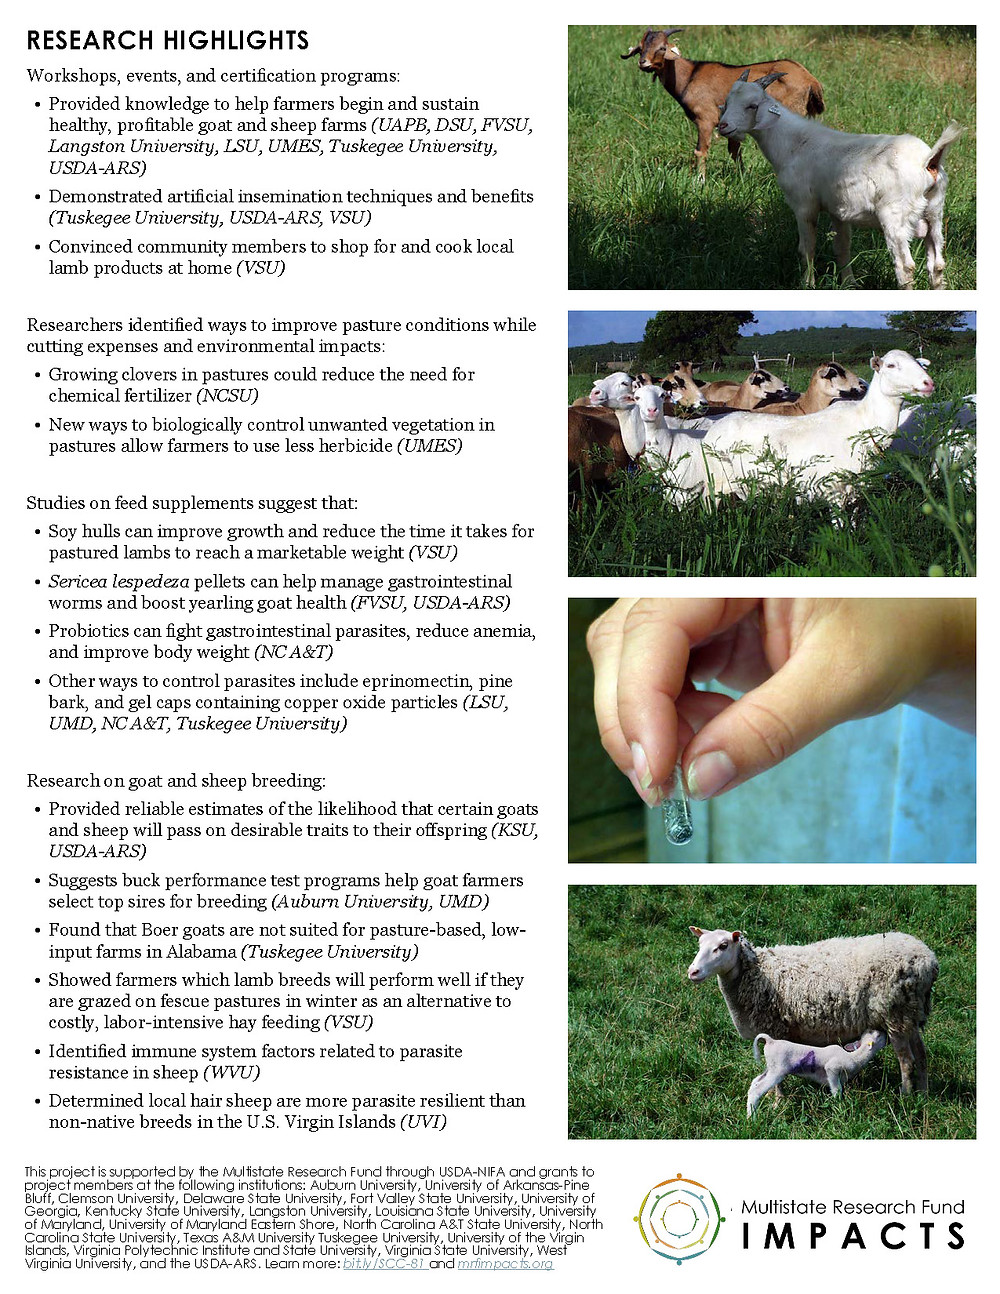 Raising Sheep and Goats in the Southeast. Click to view/download a PDF of the Impact Statement.